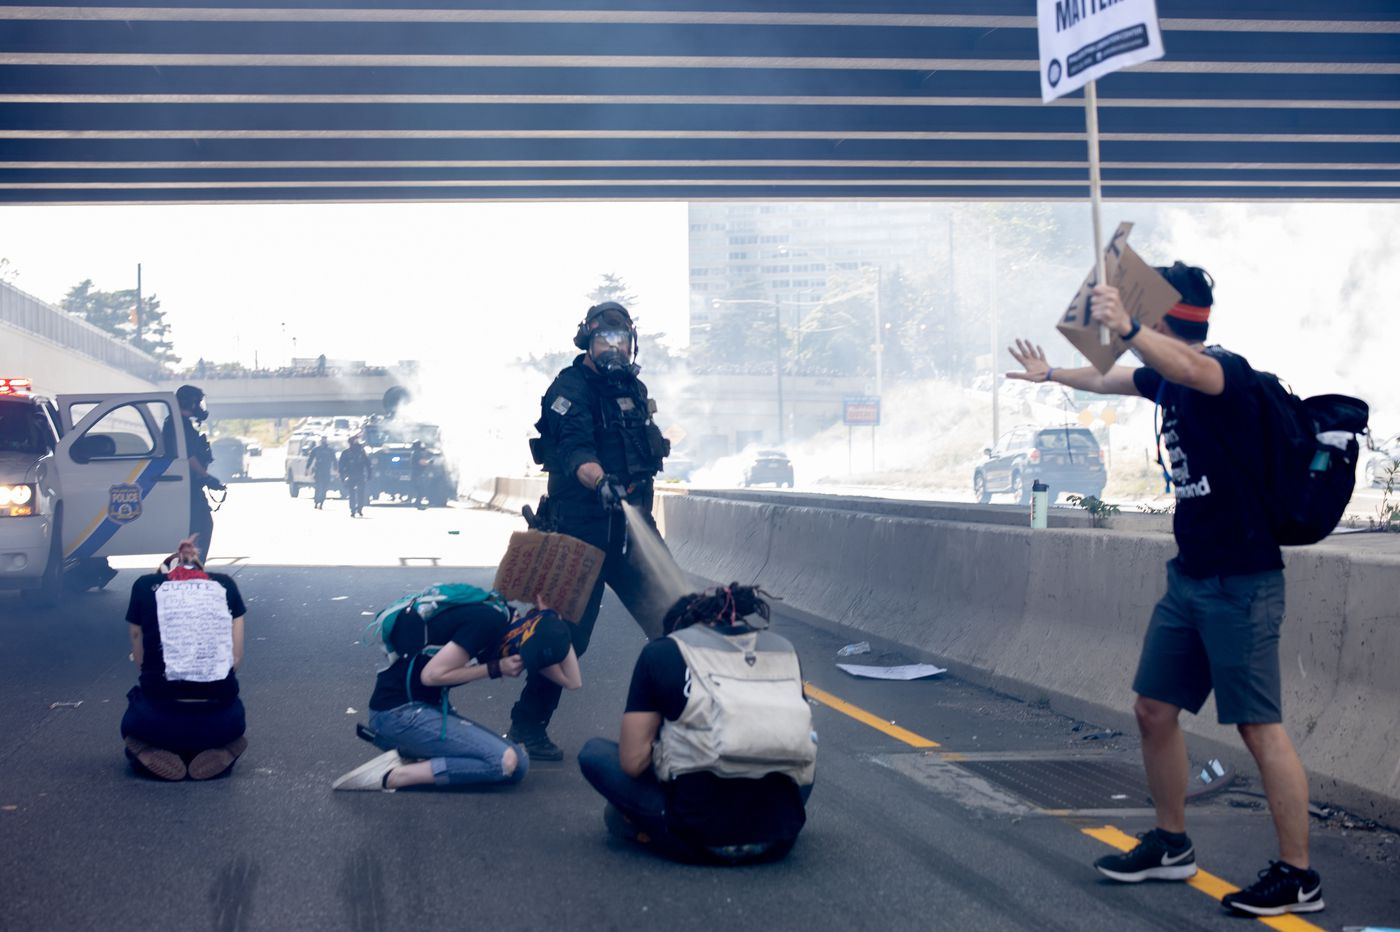 Philly officer who pepper sprayed kneeling protesters will be charged | Morning Newsletter